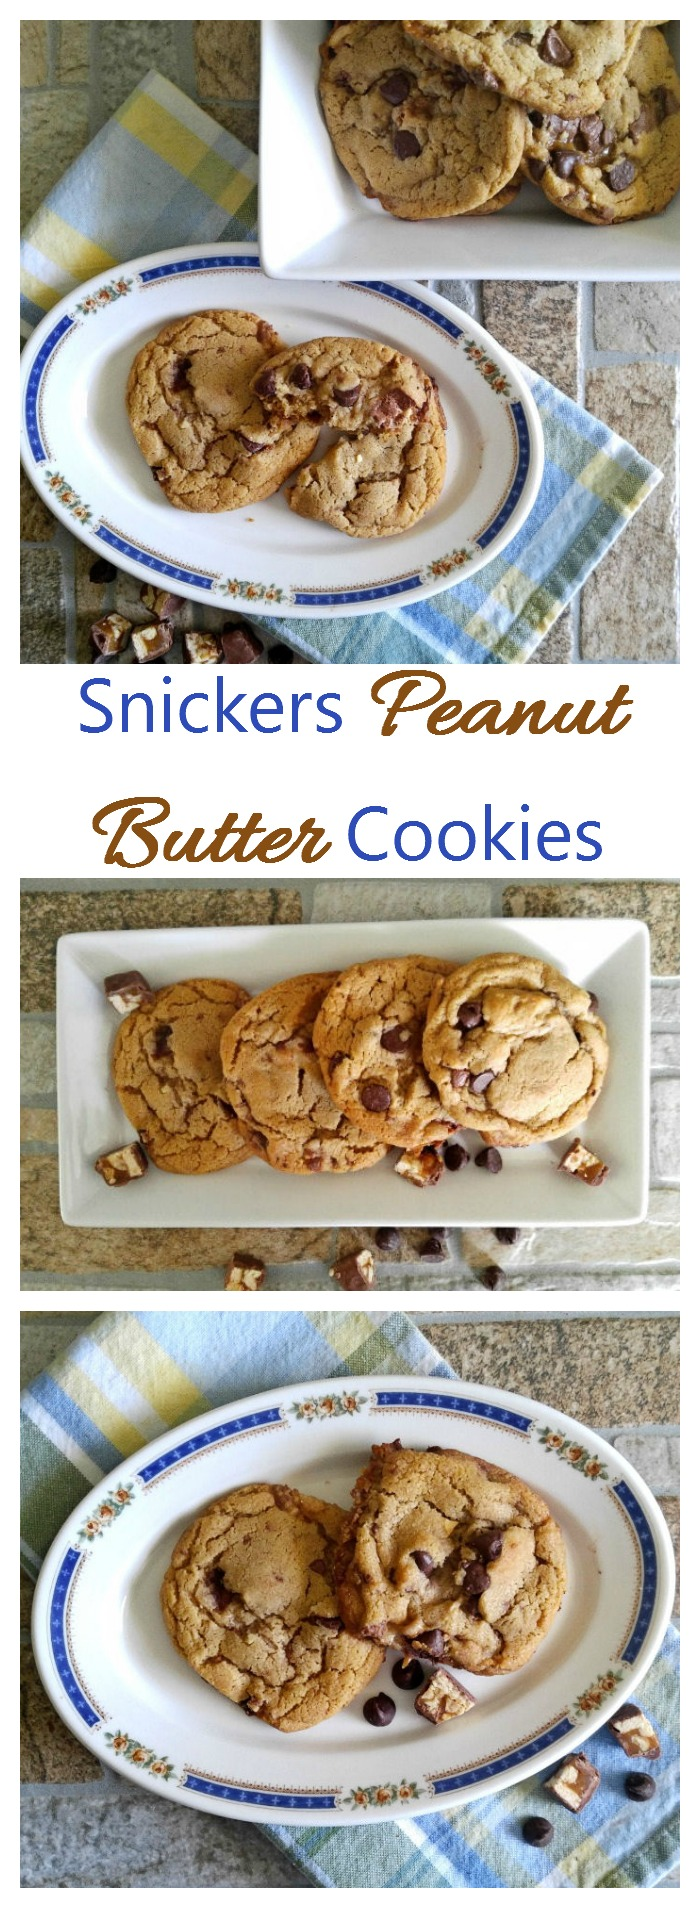 These Snickers peanut butter cookies are a wonderful blend of peanut butter, chocolate and shopped up Snickers mini candy bars. Yum!